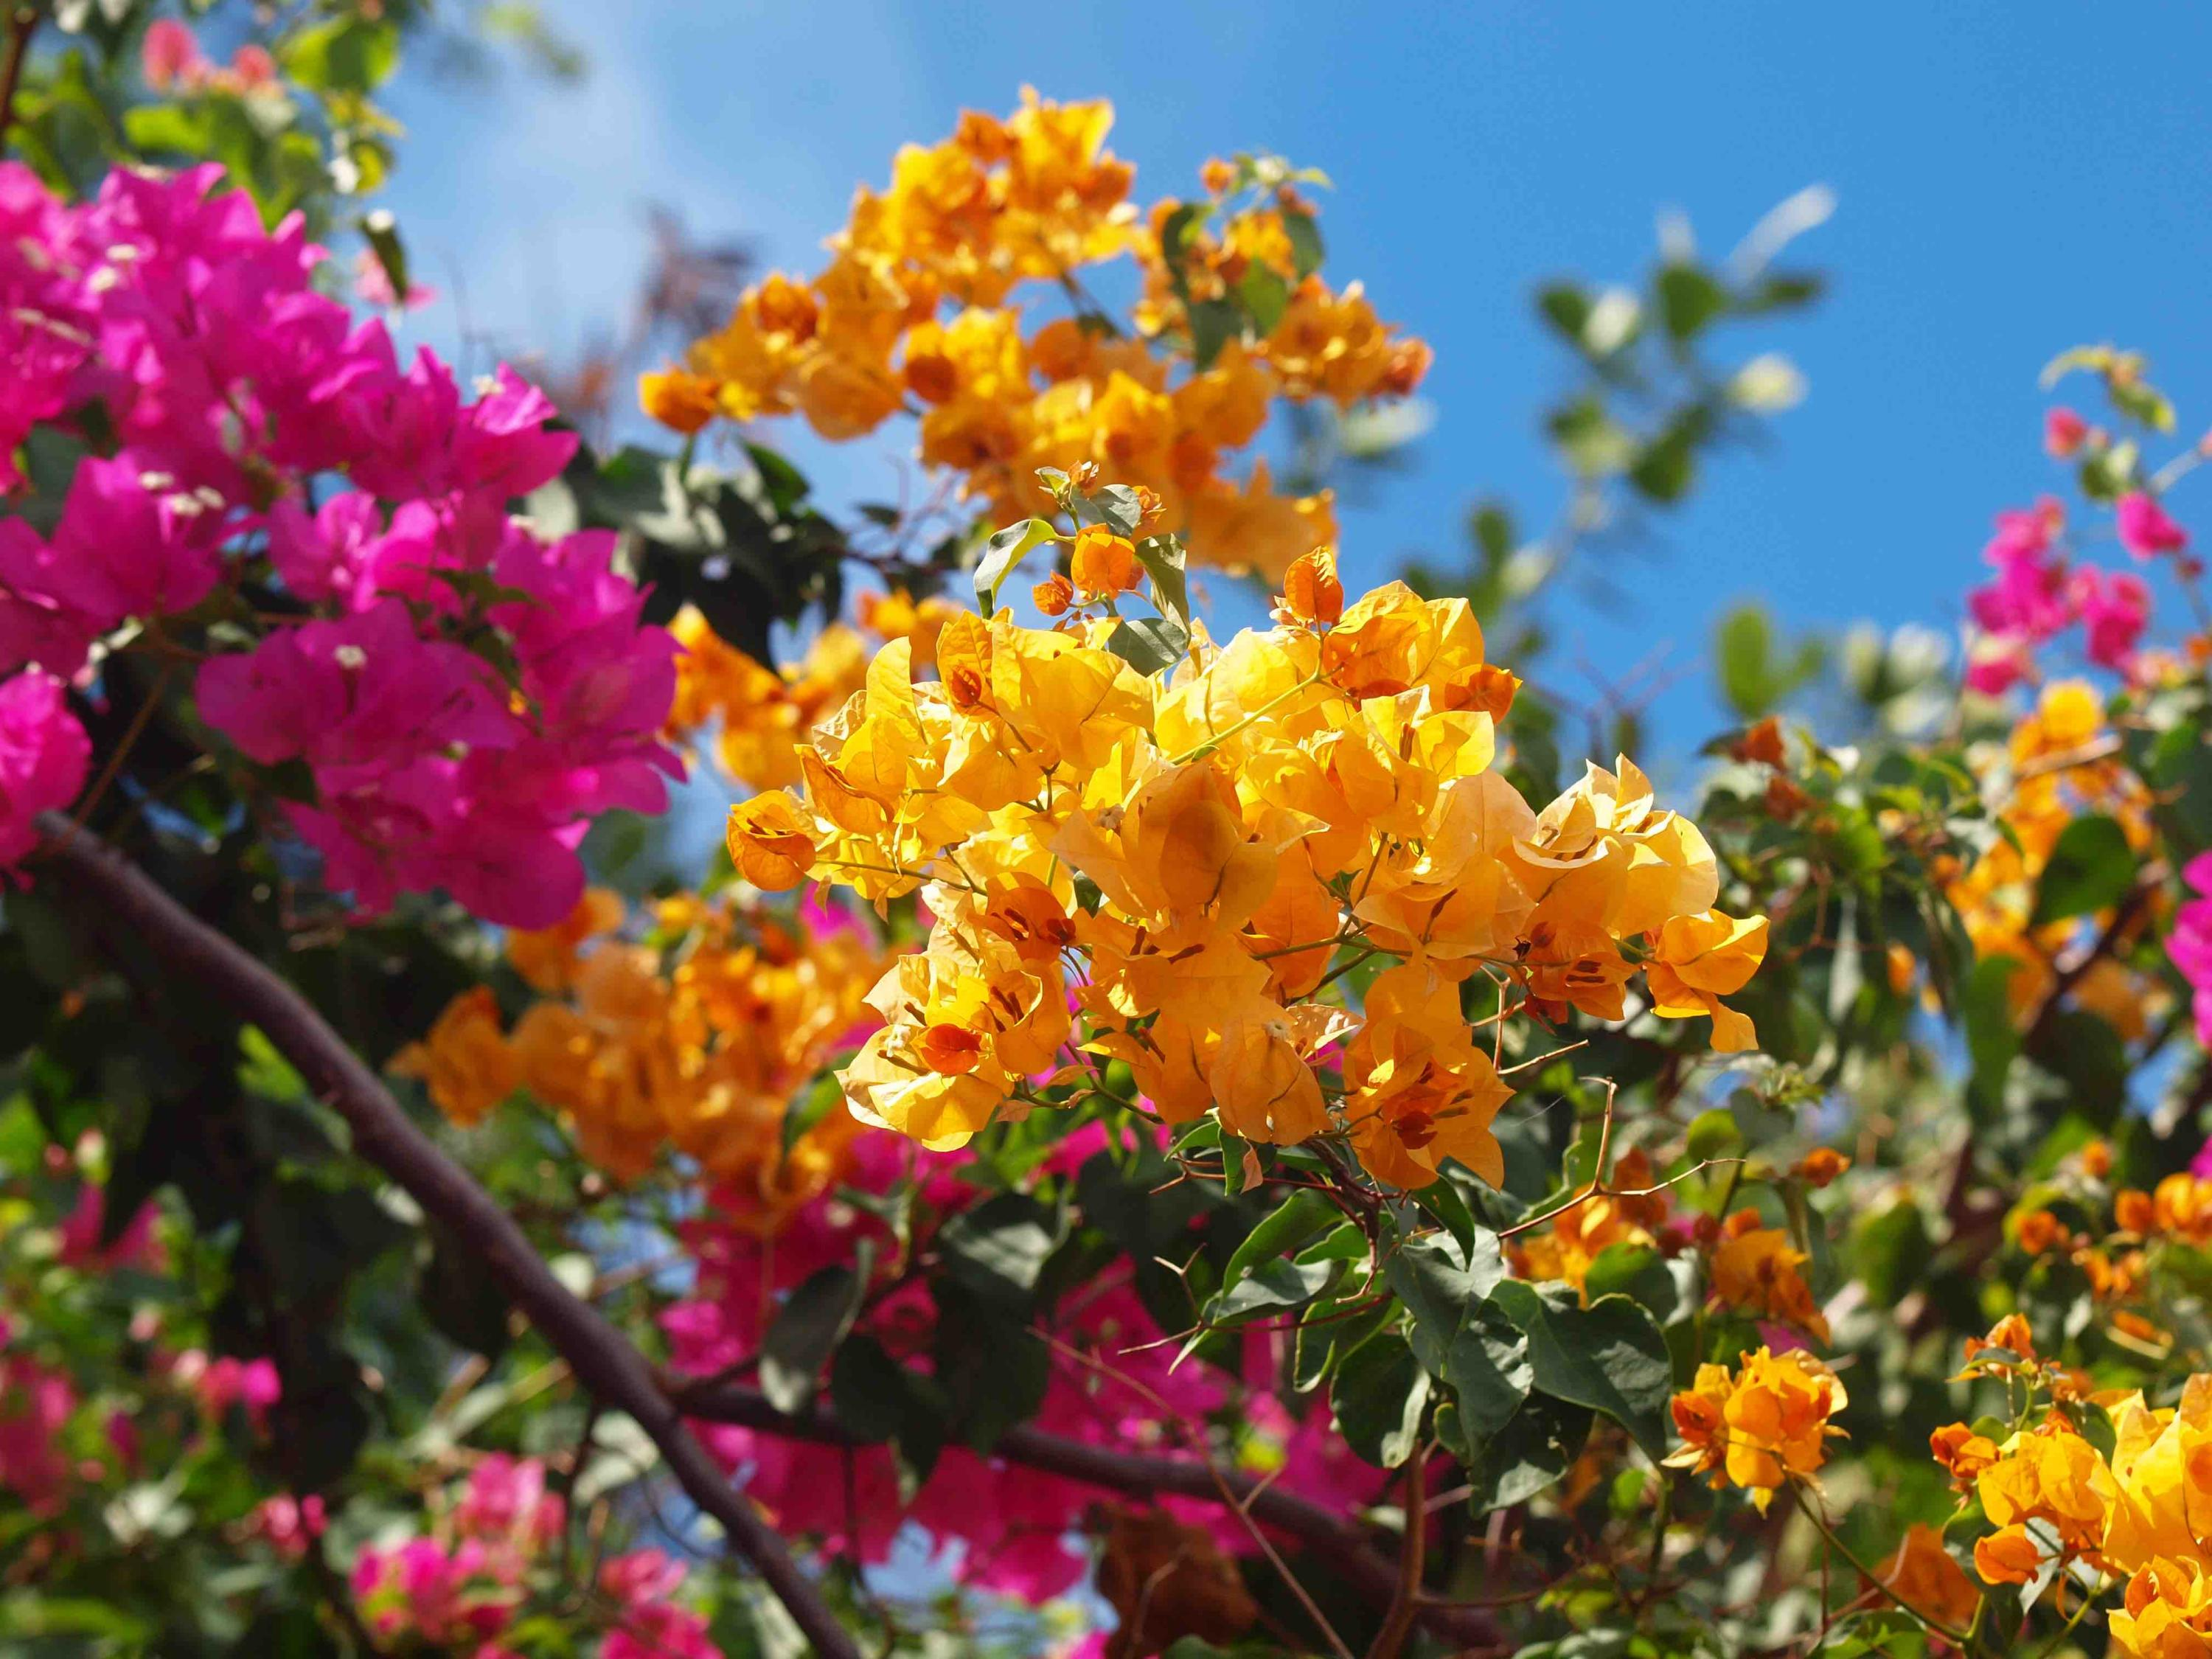 Gorgeous blooming Bougainvillea